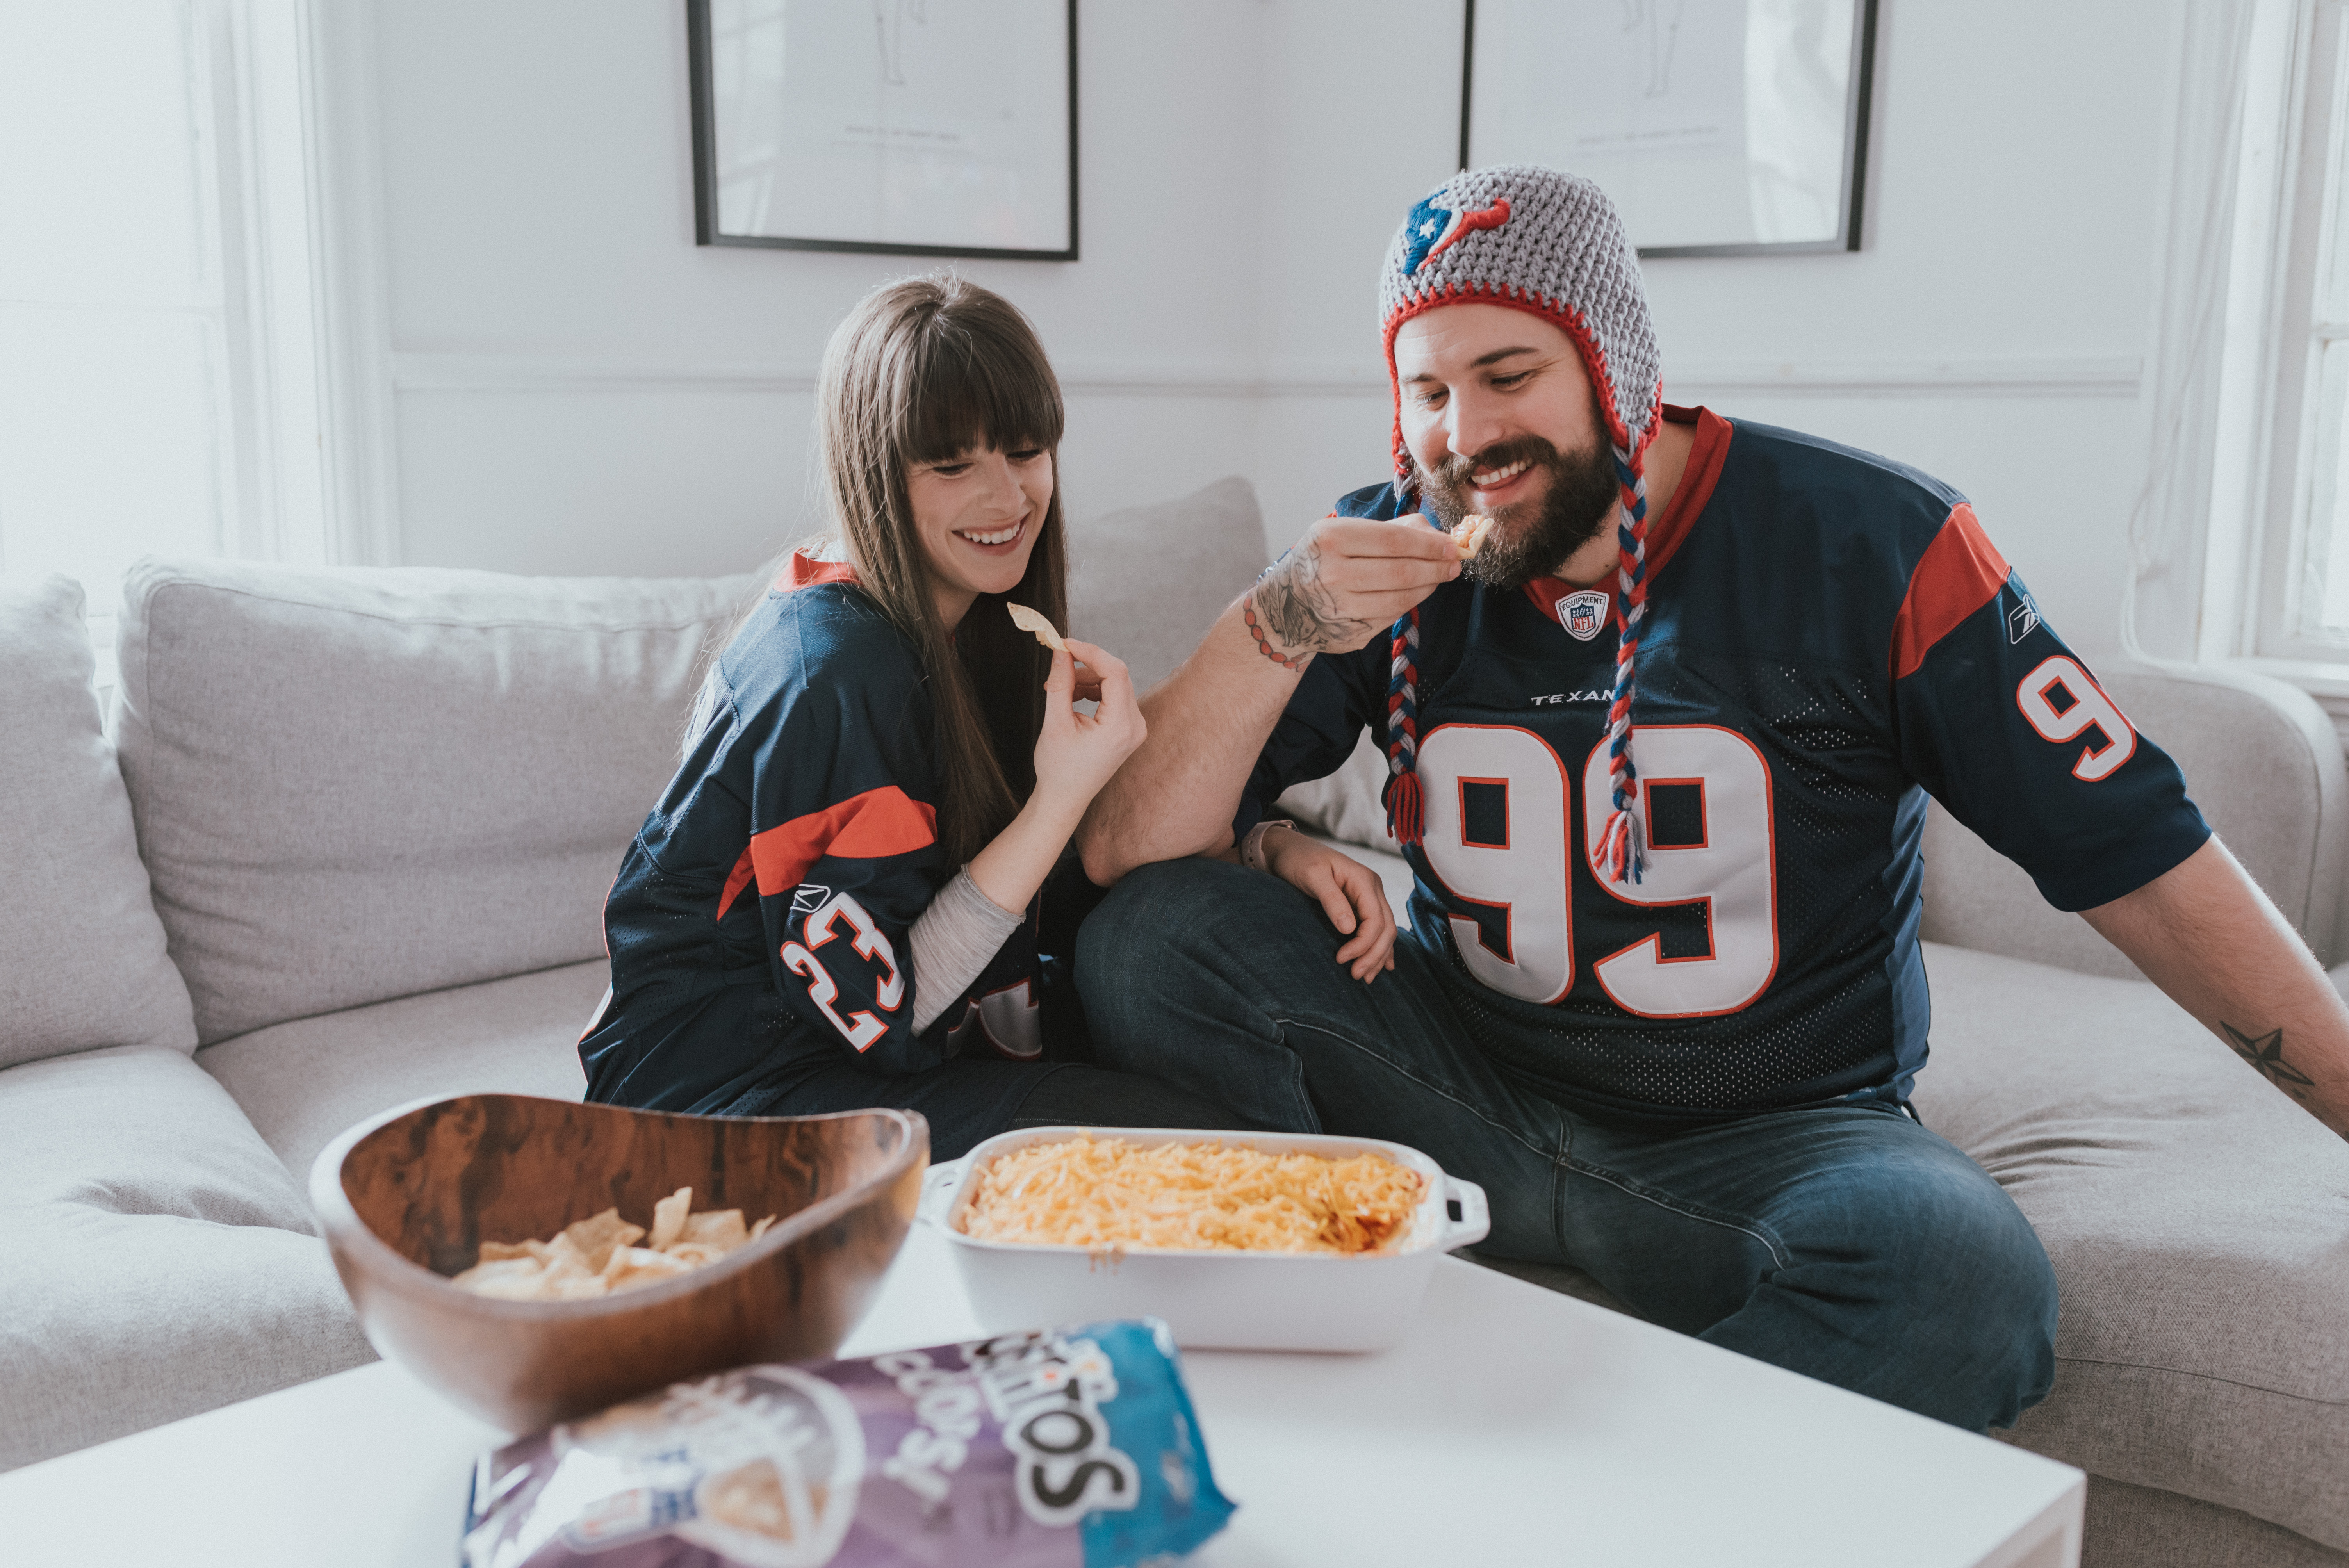 The Wild Decoelis | 3 Recipes for your super bowl party with tostitos